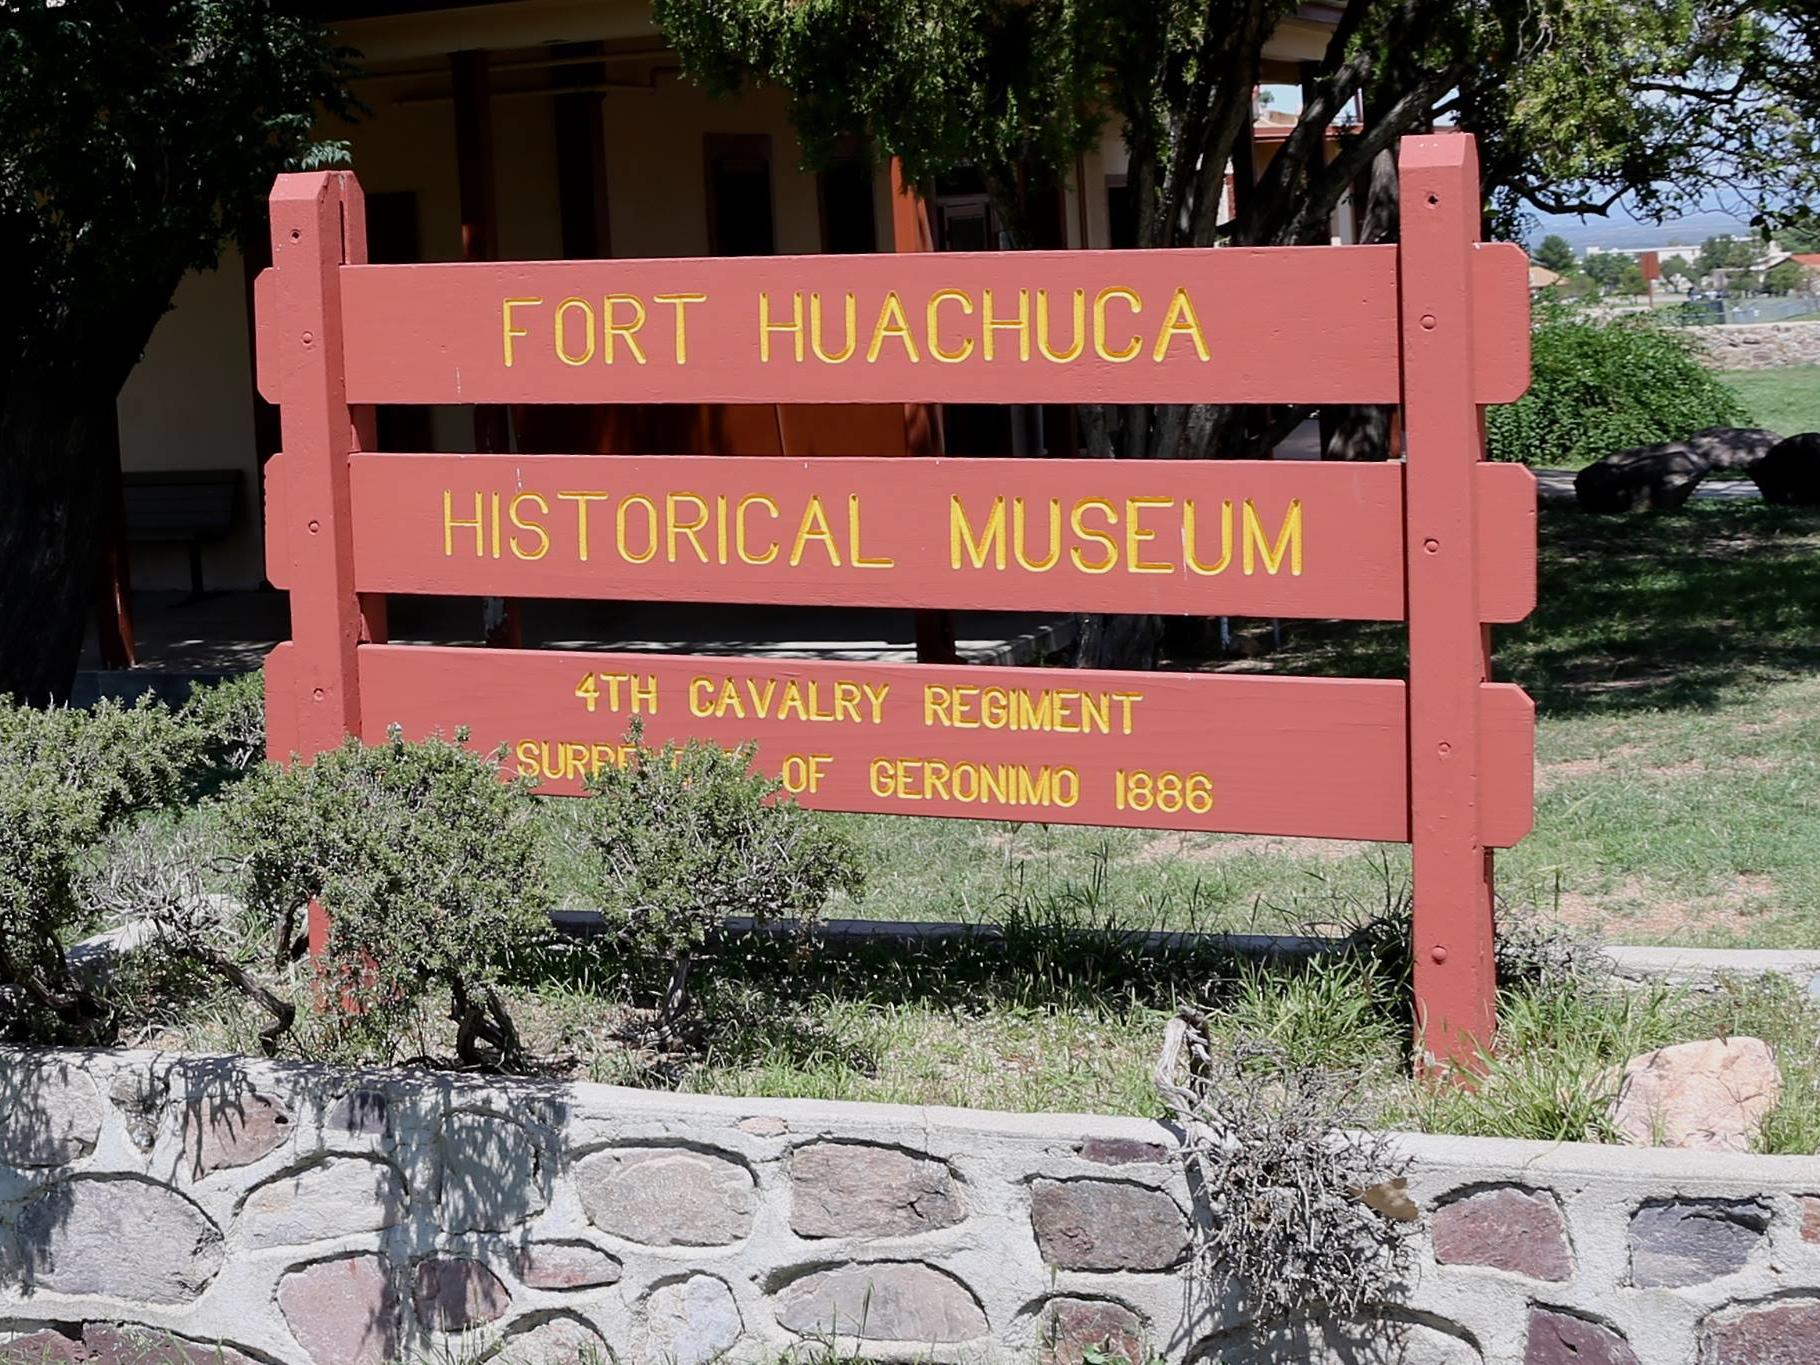 Sign for Fort Huachuca Historical Museum